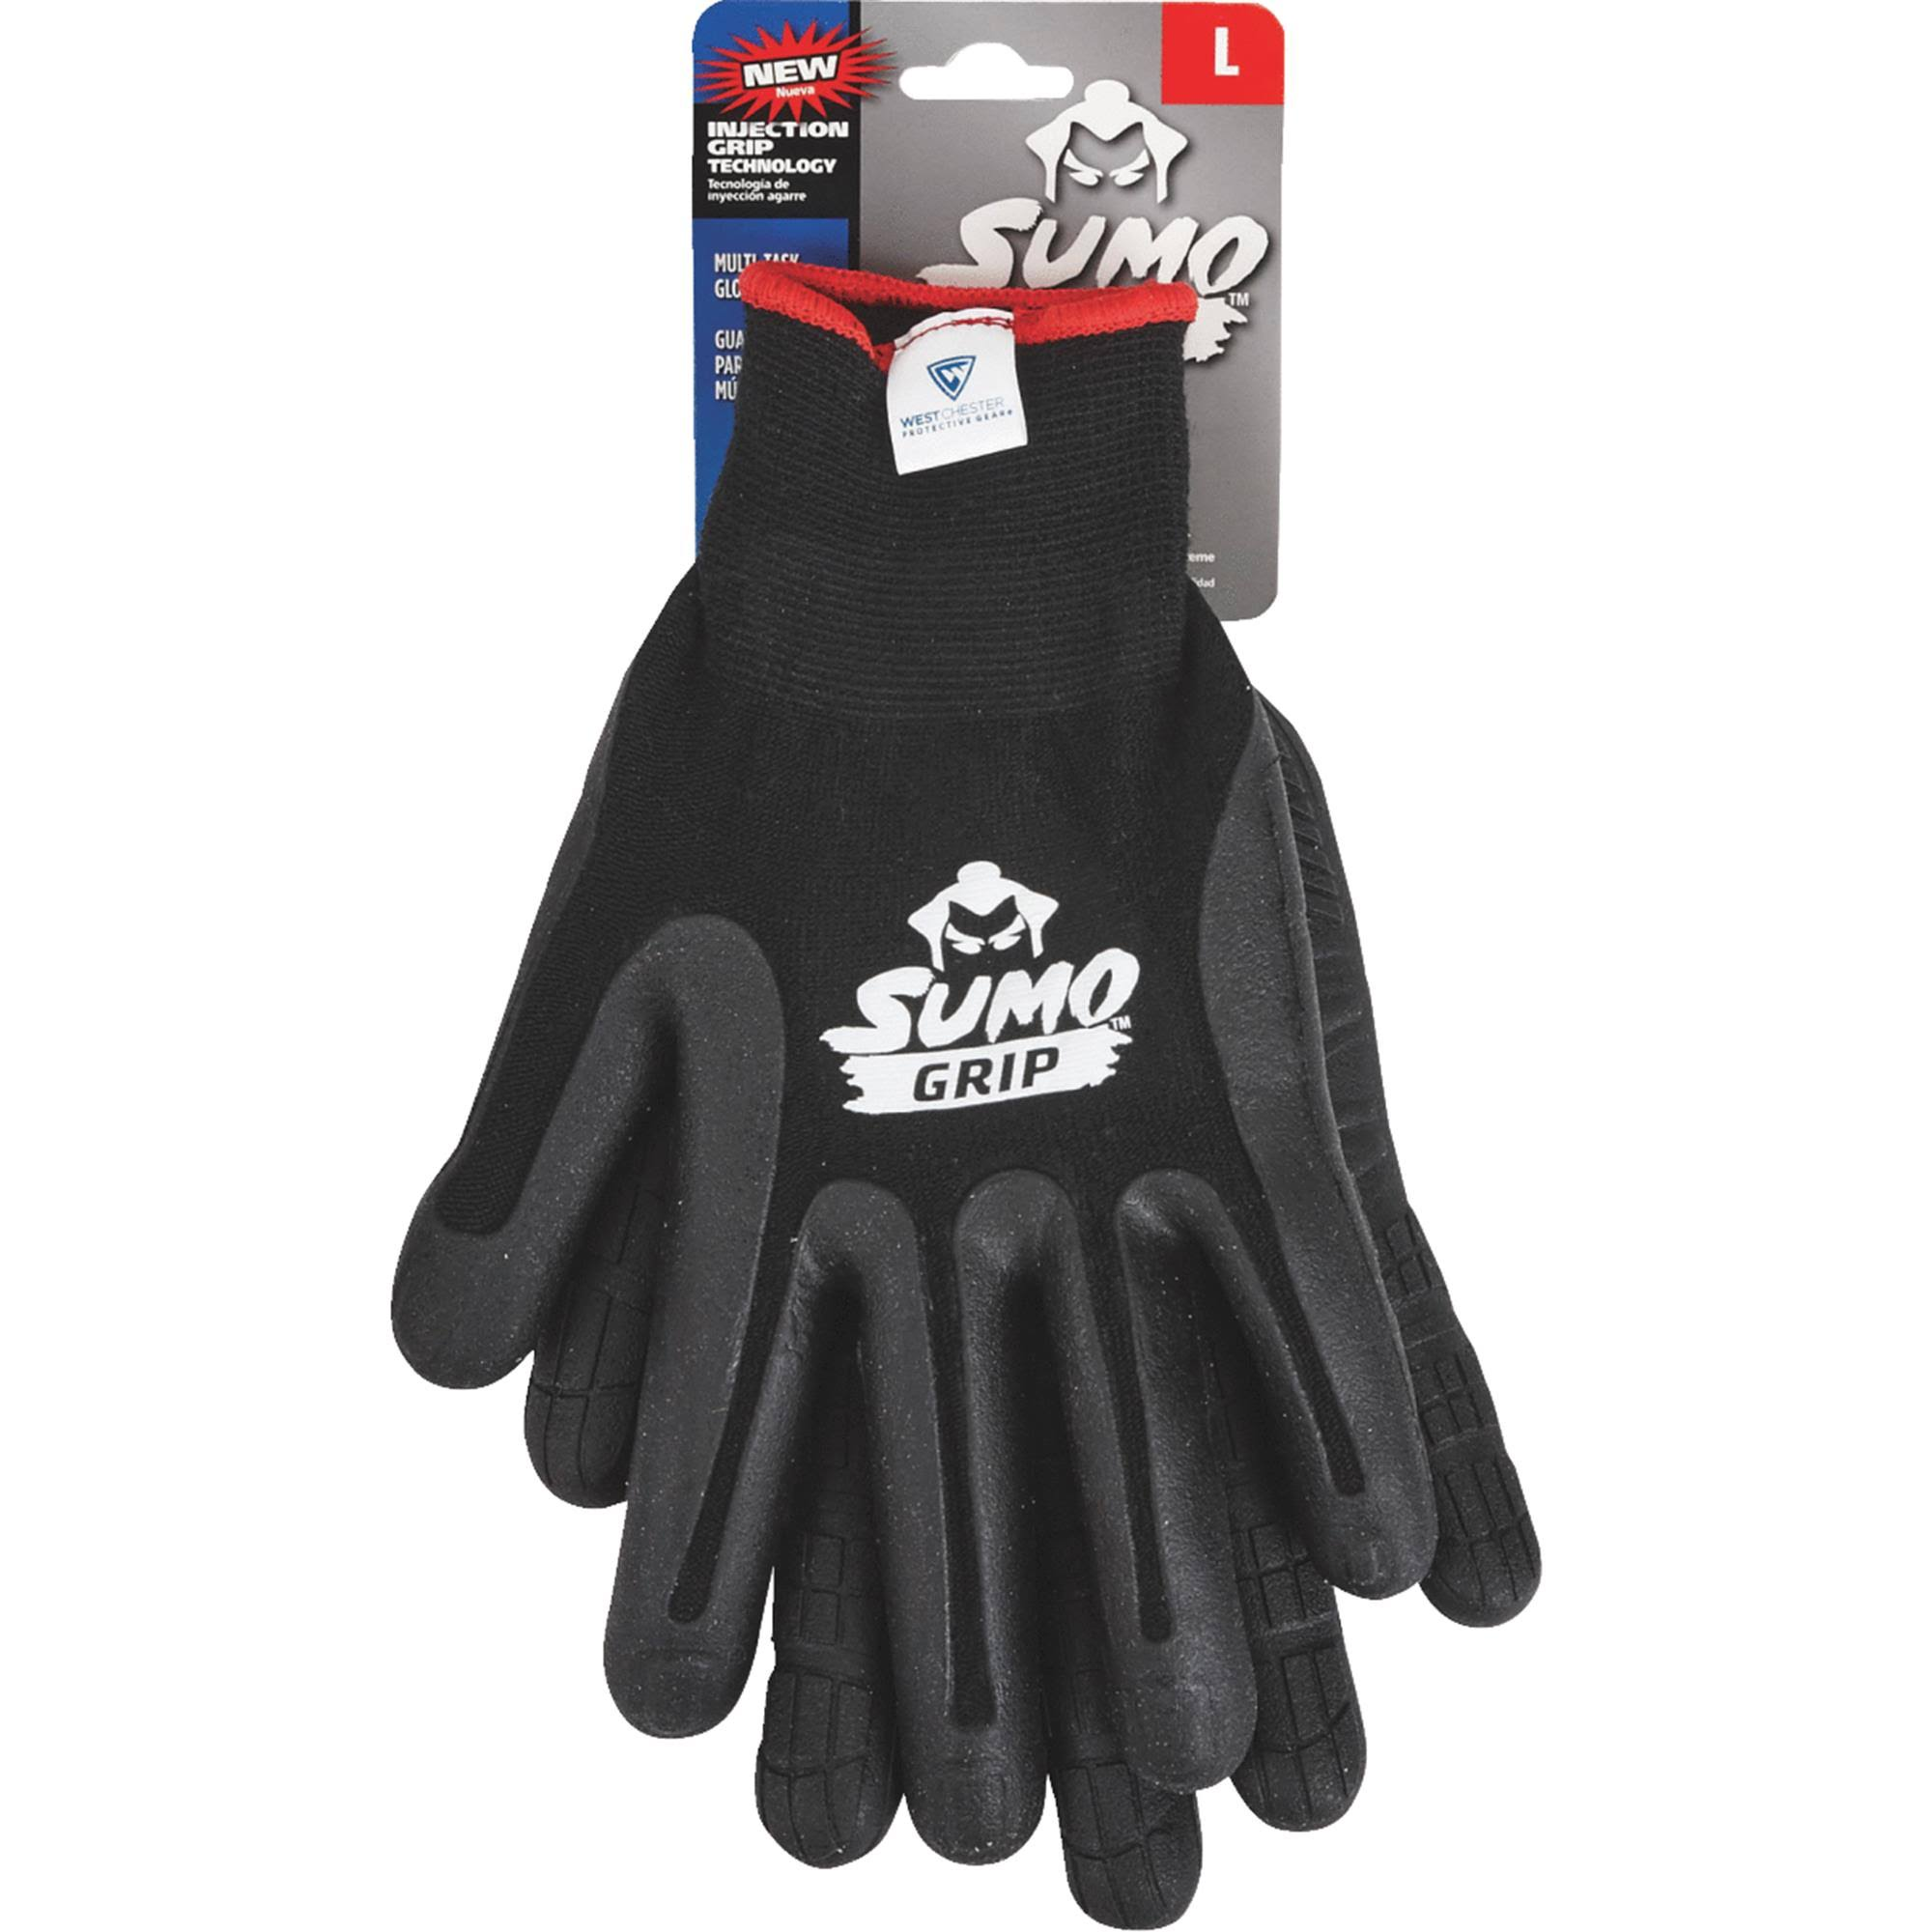 West Chester Protective Gear Sumo Grip Thermoplastic Rubber Coated Glove - Black, Large